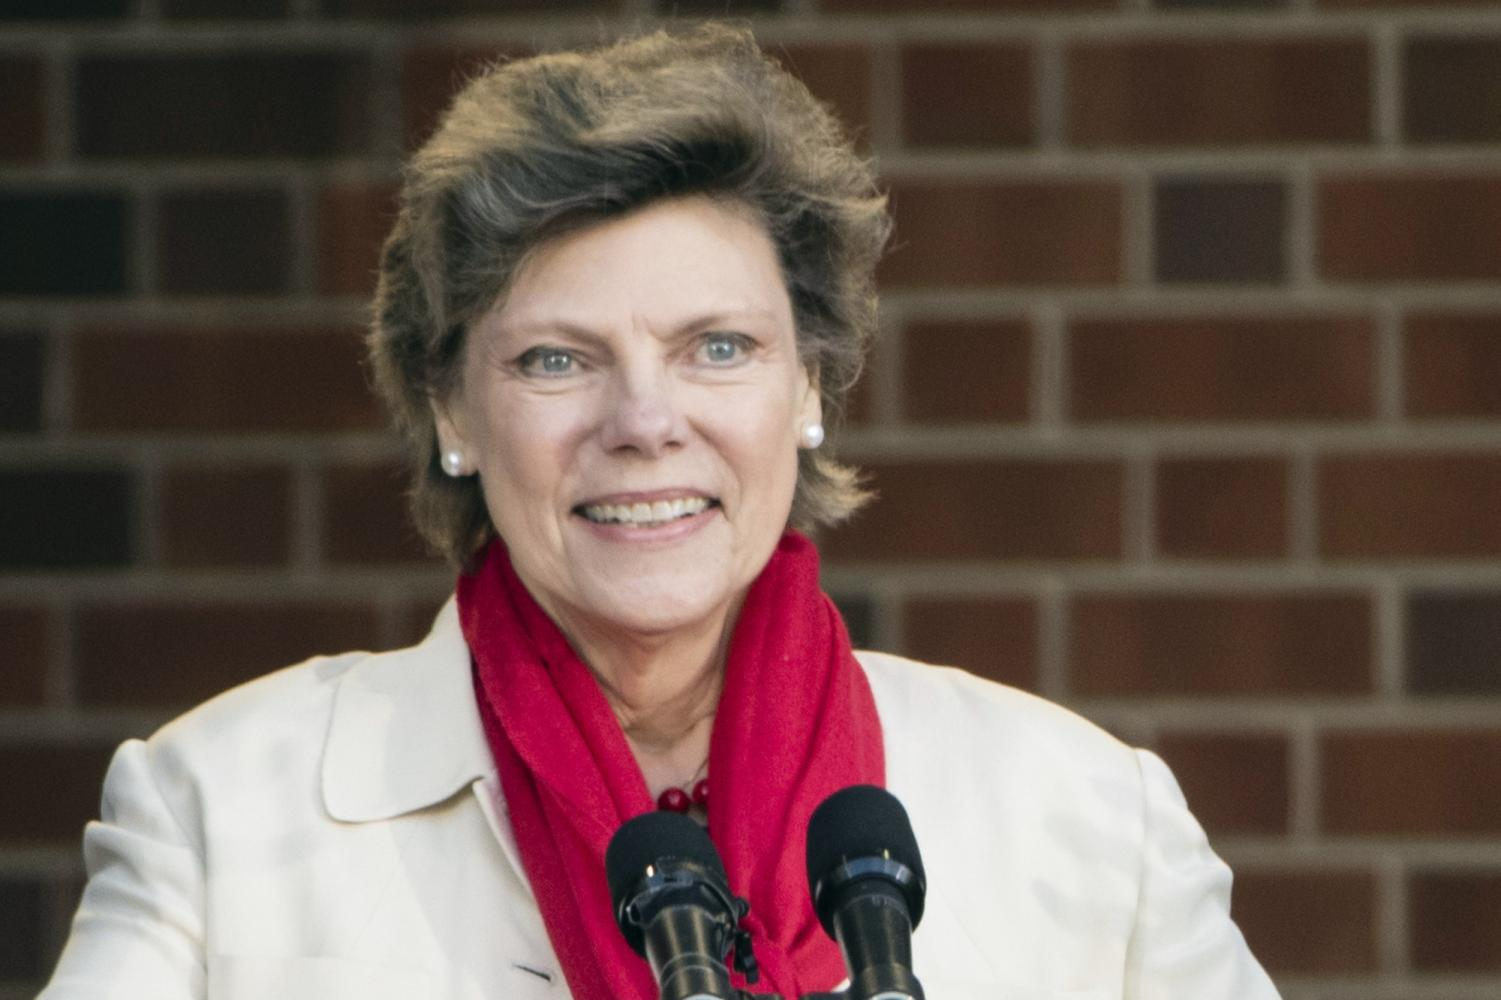 In this April 19, 2017, file photo, Cokie Roberts speaks during the opening ceremony for Museum of the American Revolution in Philadelphia. Roberts, a longtime political reporter and analyst at ABC News and NPR has died, ABC announced Tuesday, Sept. 17, 2019.  She was 75. (AP Photo/Matt Rourke) Photo credit: Associated Press